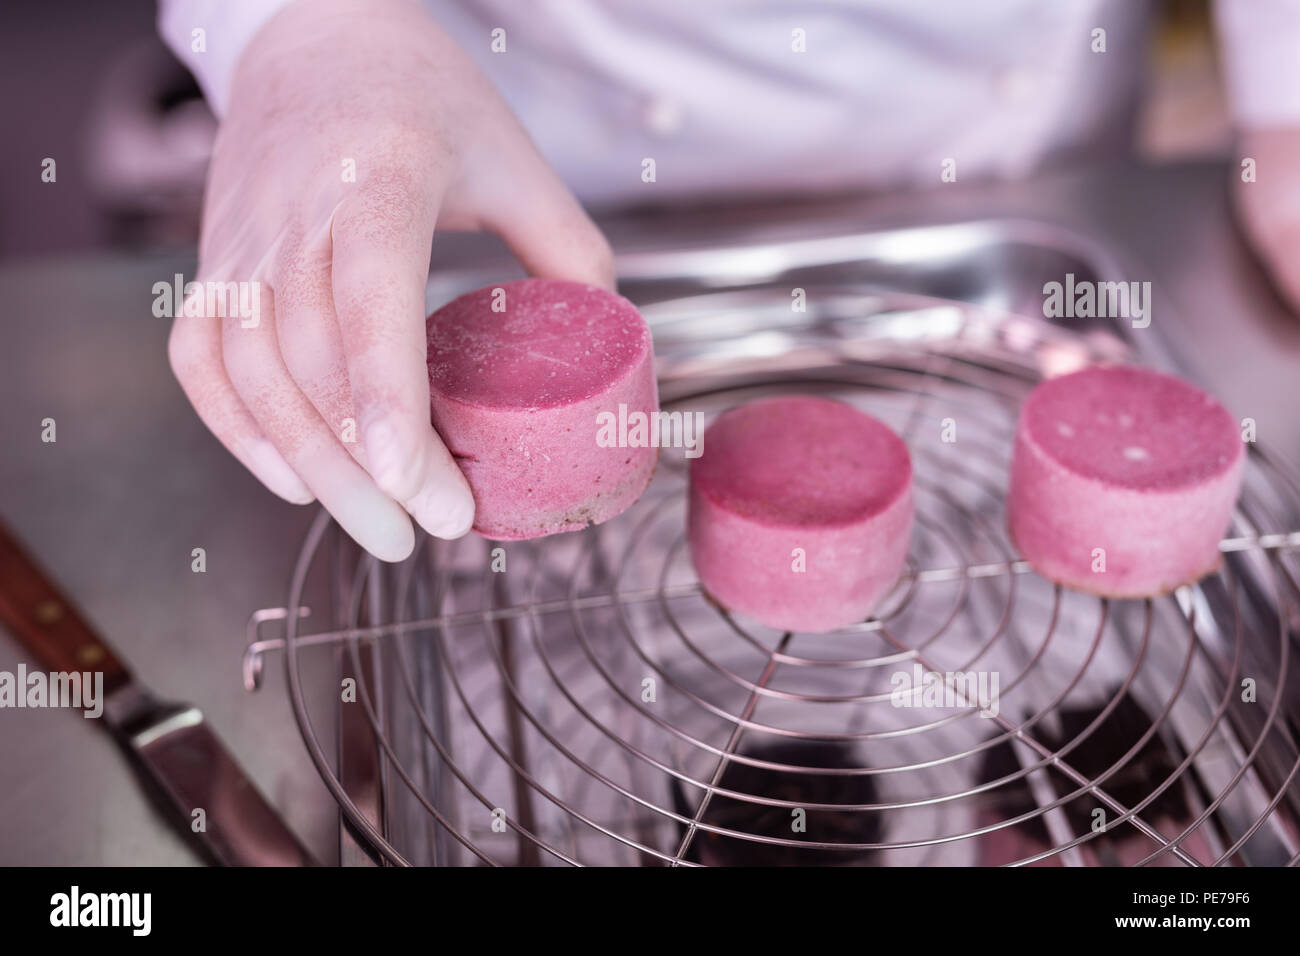 Baker taking frozen semi products for fruit cakes - Stock Image